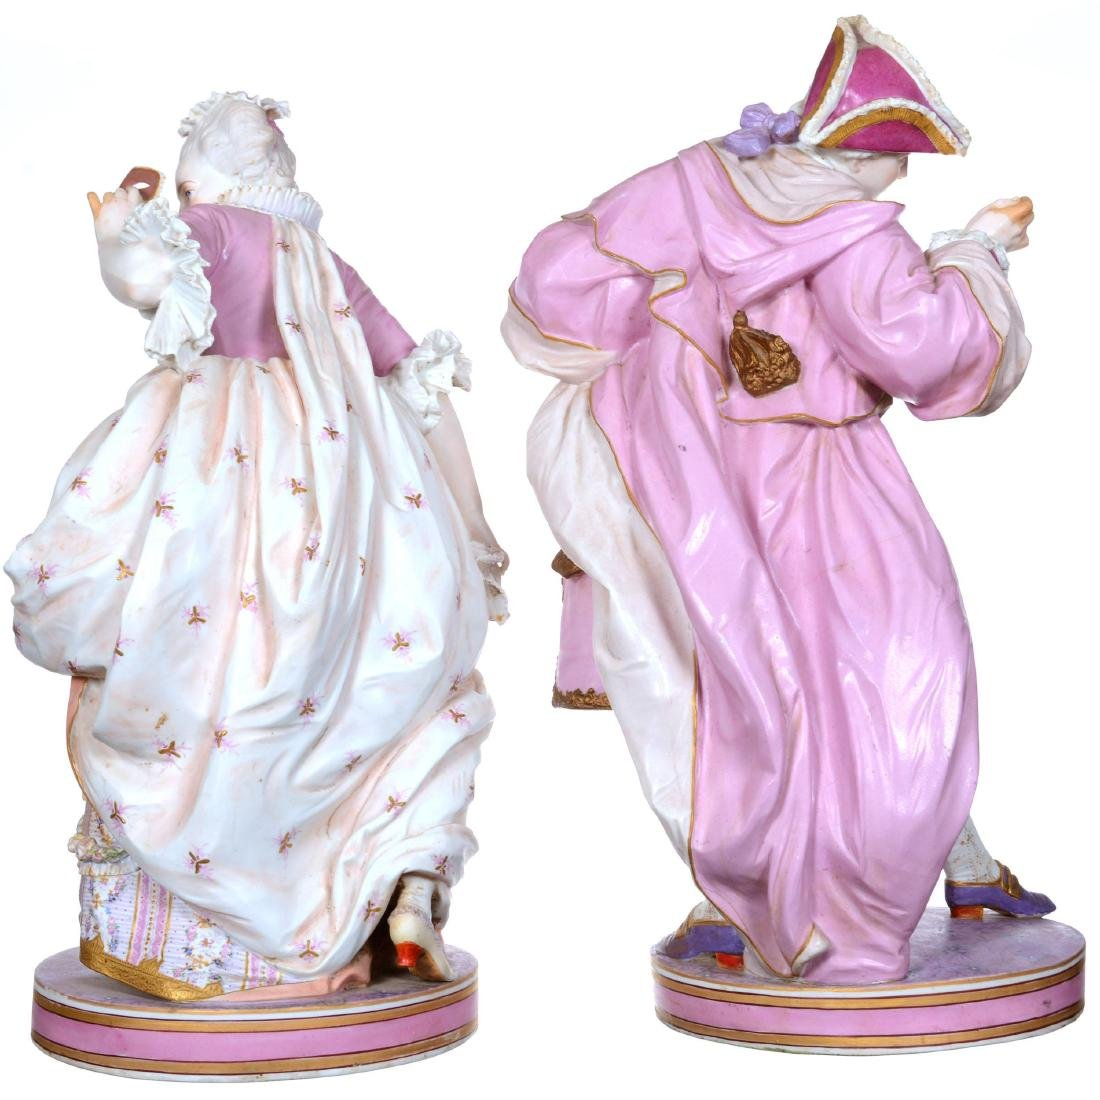 Pair of Large French Bisque Figures - 3